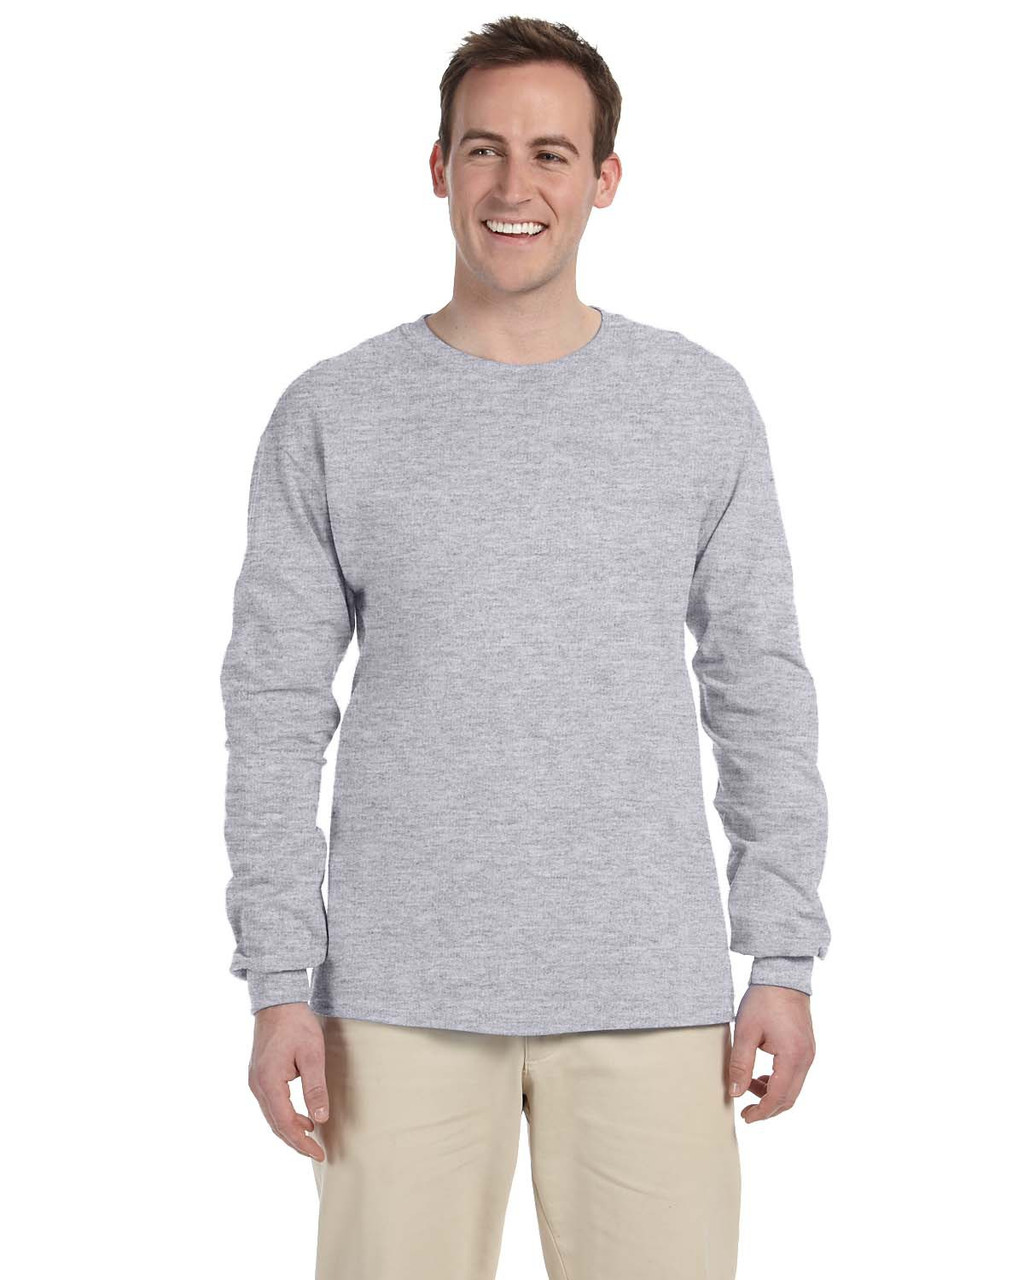 Athletic Heather - 4930 Fruit of the Loom 100% Heavy Cotton HD® Long-Sleeve T-Shirt | Blankclothing.ca